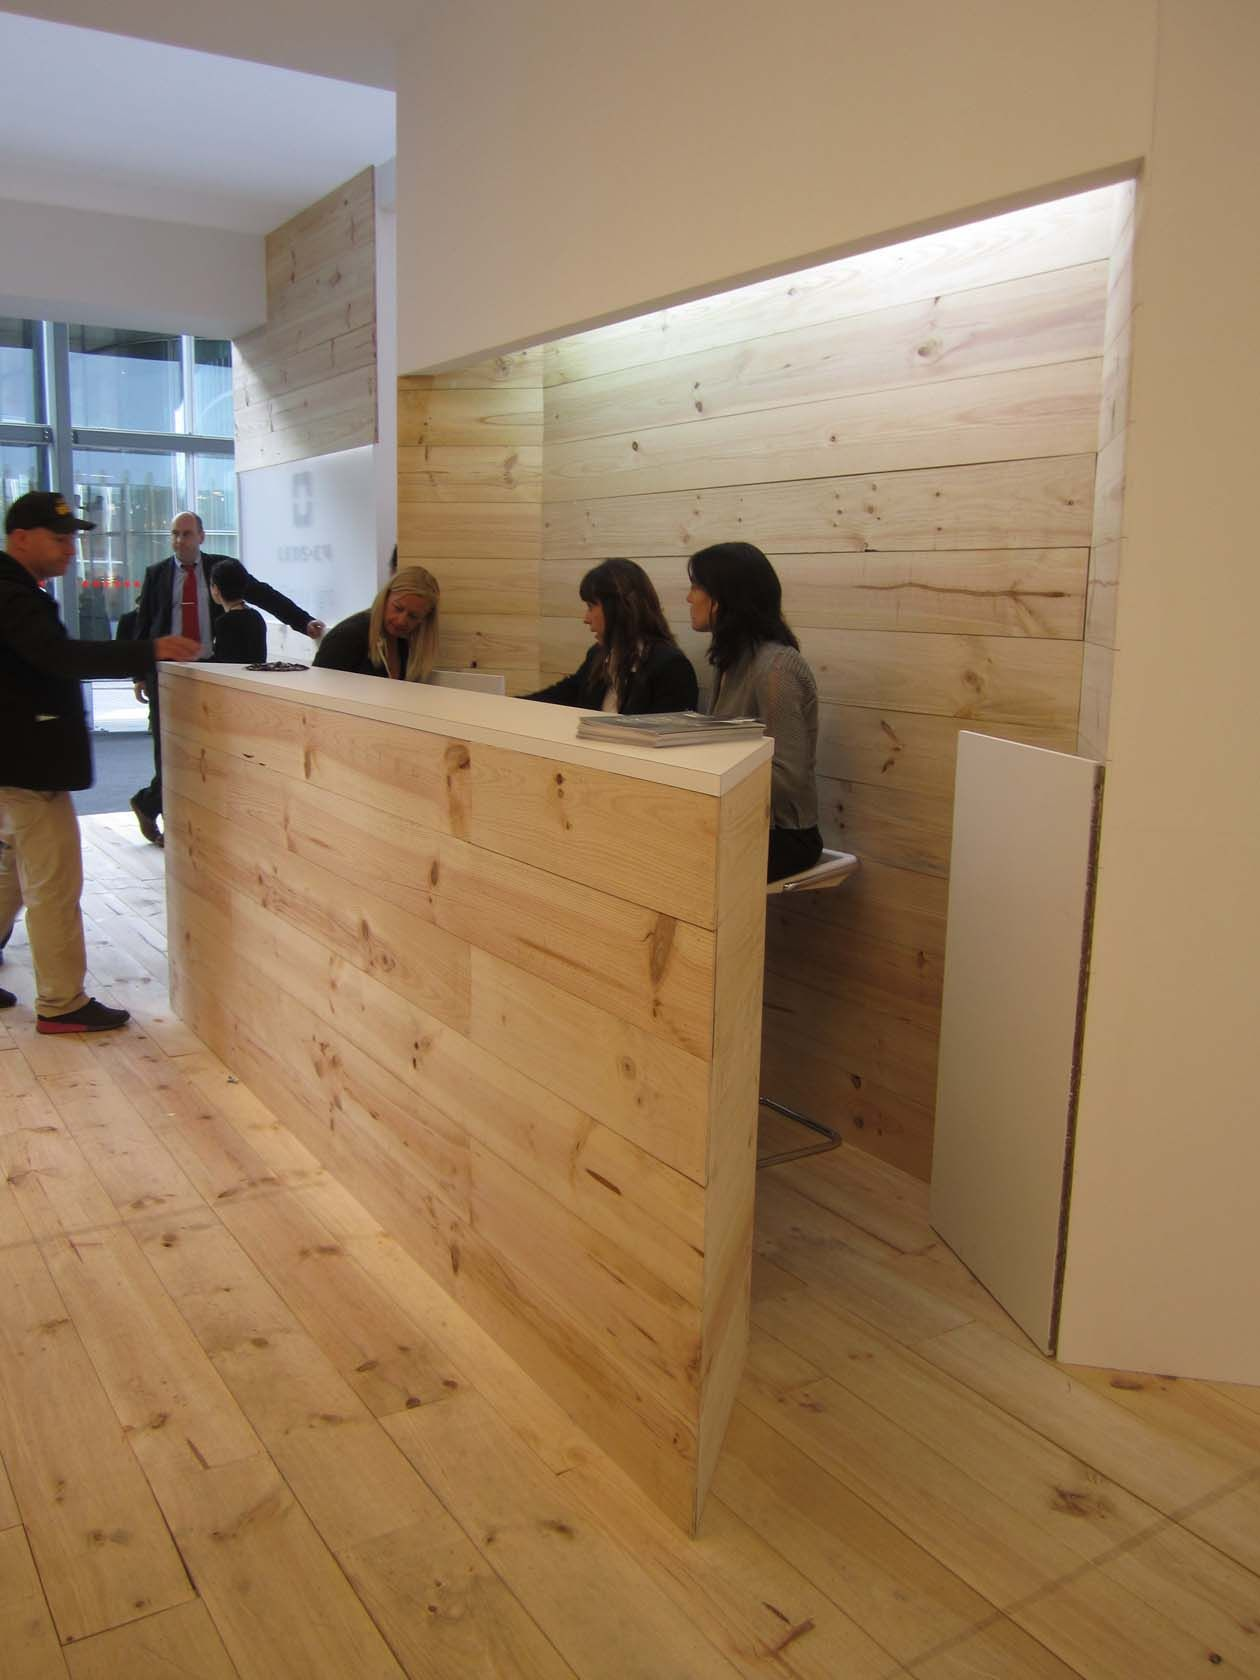 stand up reception, yin yang space carved behind desk to capture  receptionists